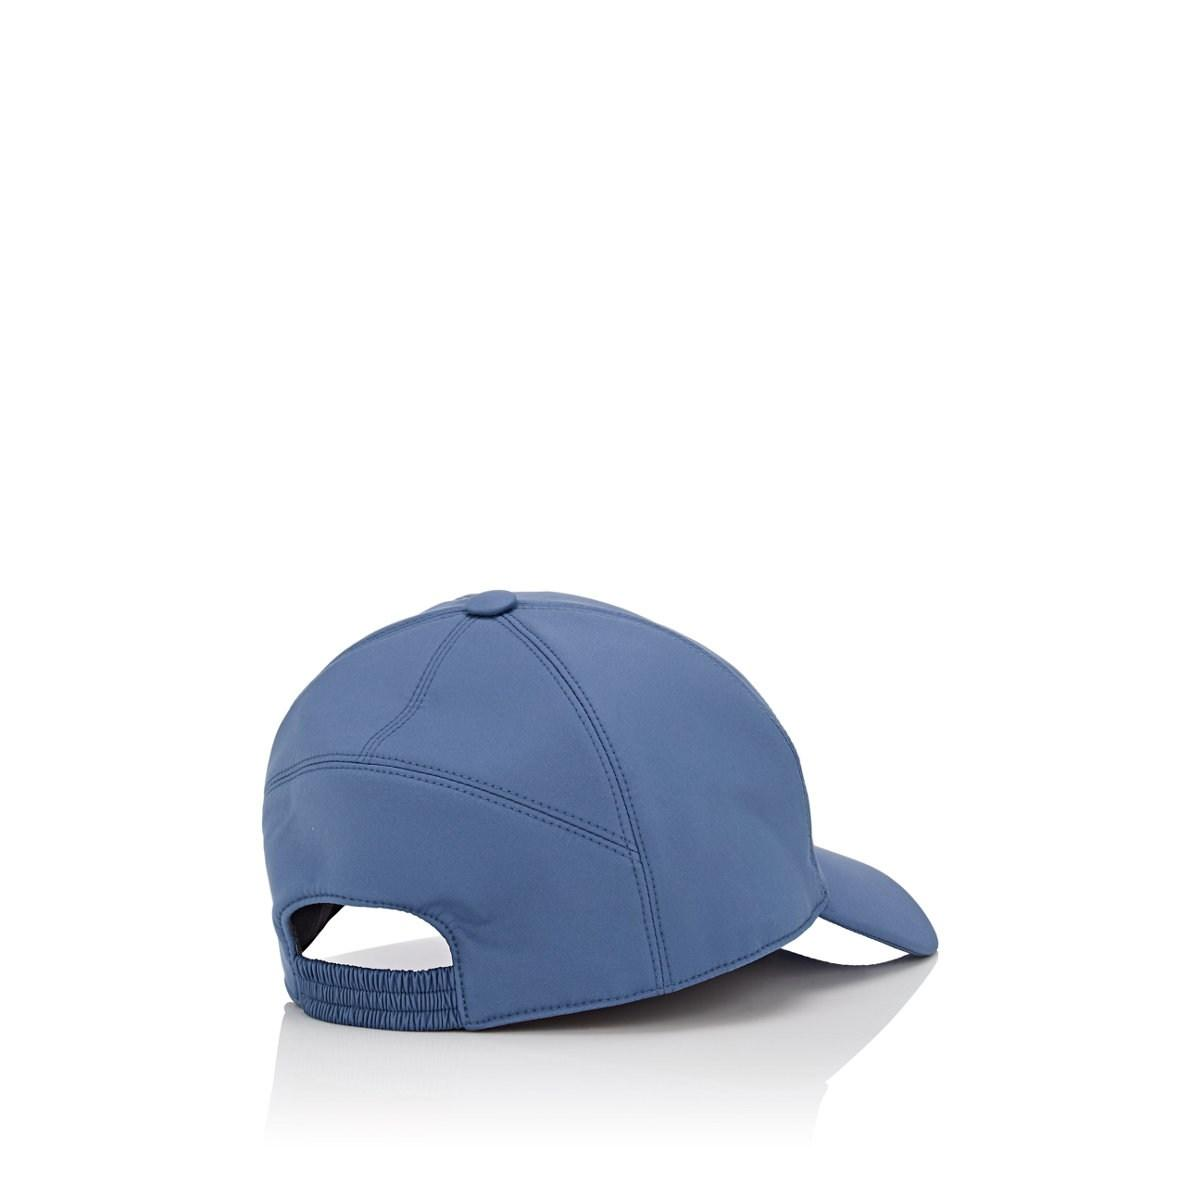 b5acf812 Loro Piana - Blue Merlin Ty Logo Baseball Cap for Men - Lyst. View  fullscreen